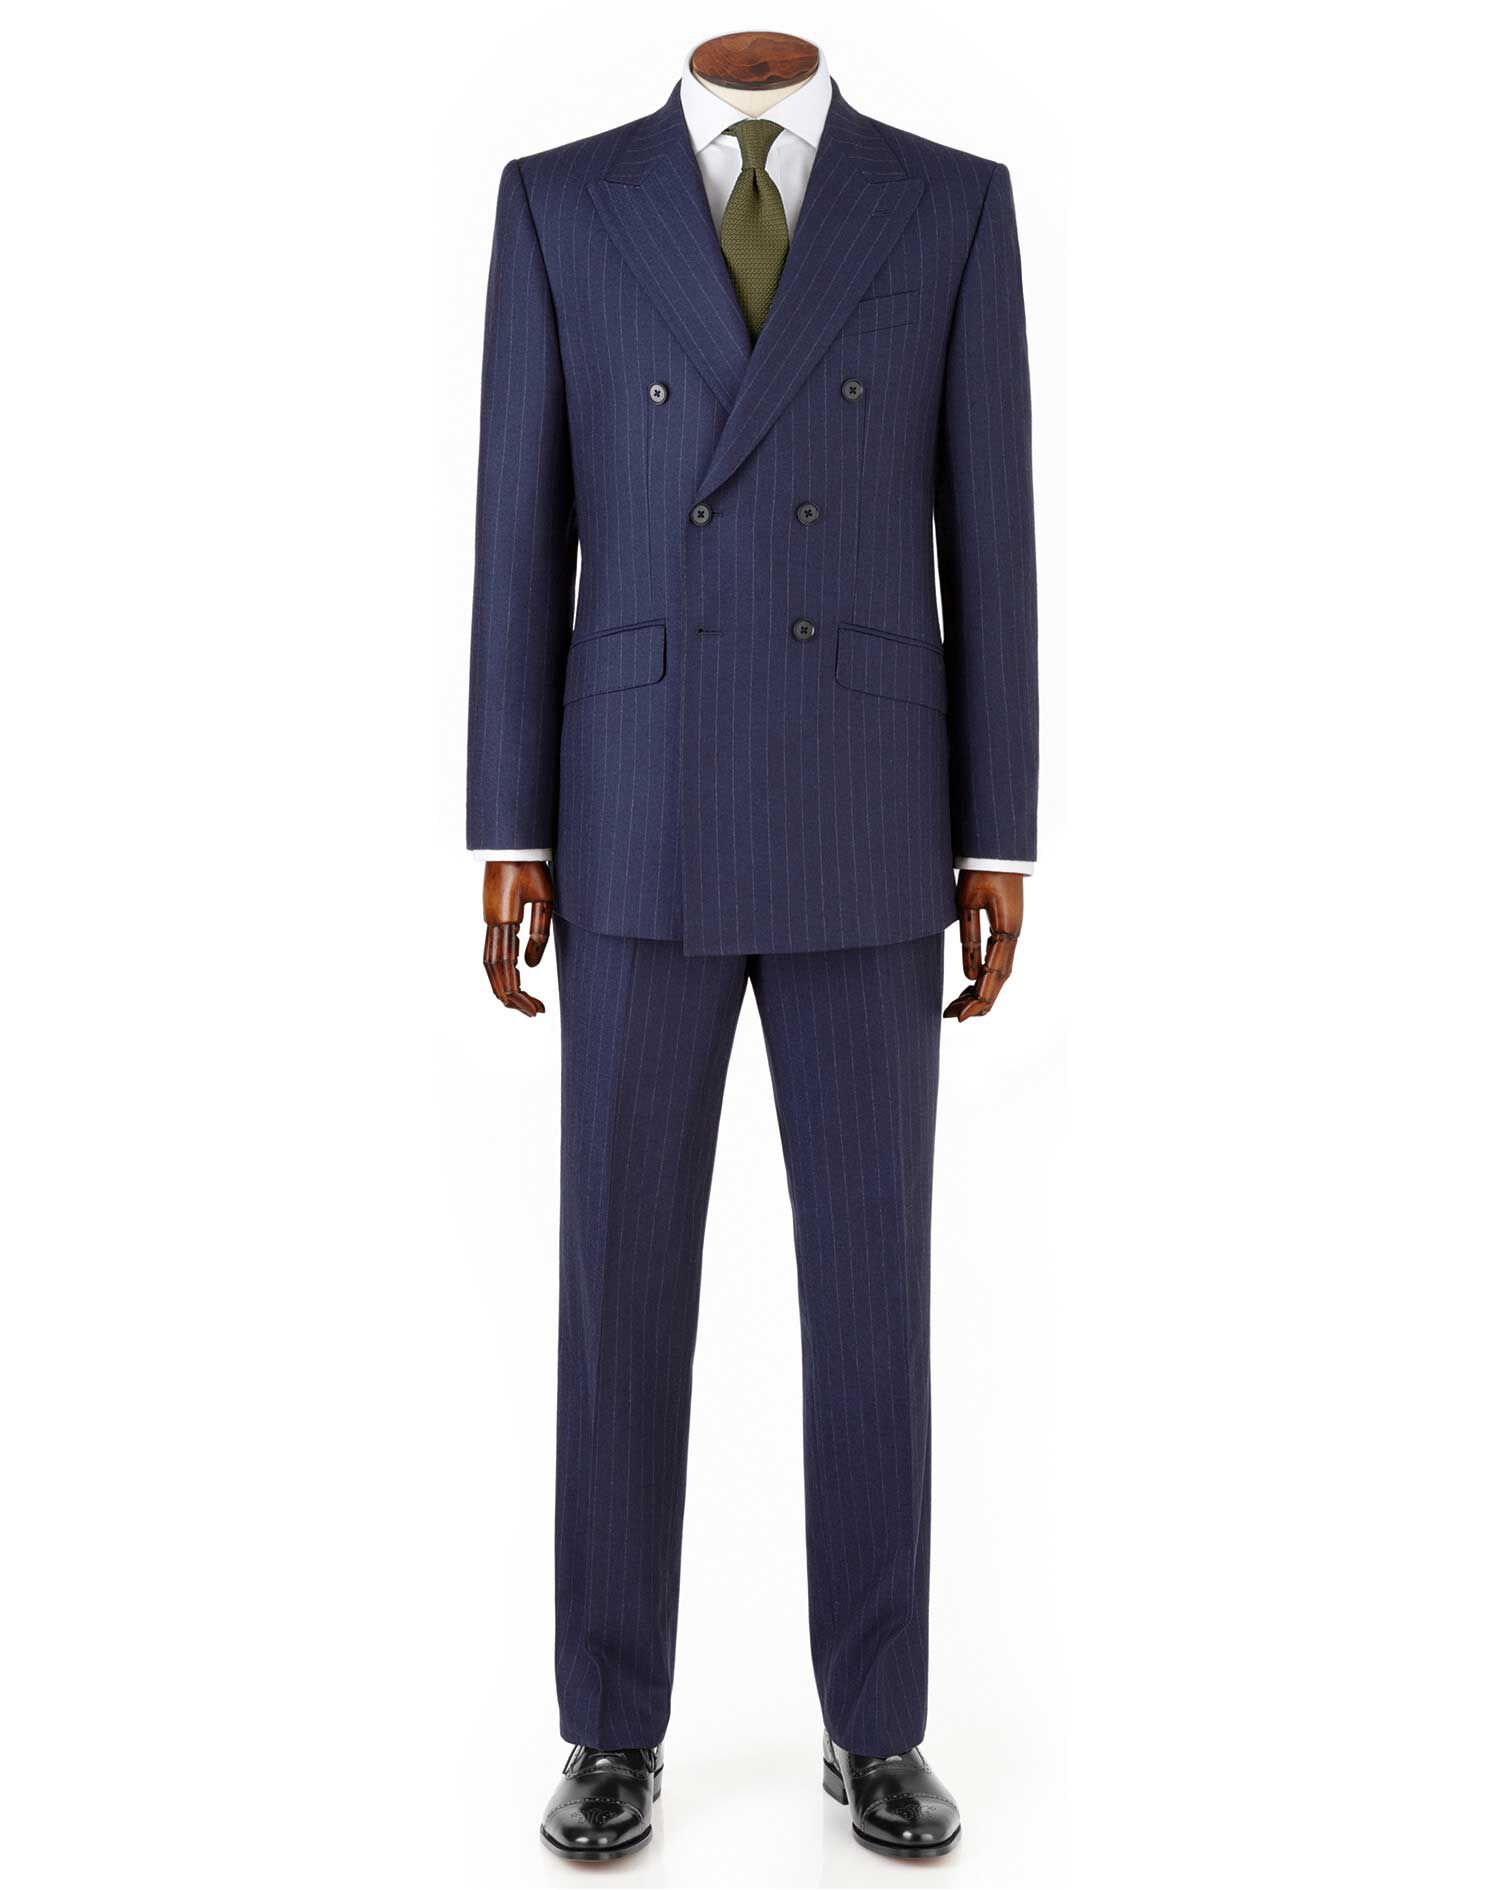 Navy Slim Fit Saxony Business Suit Wool Jacket Size 38 by Charles Tyrwhitt